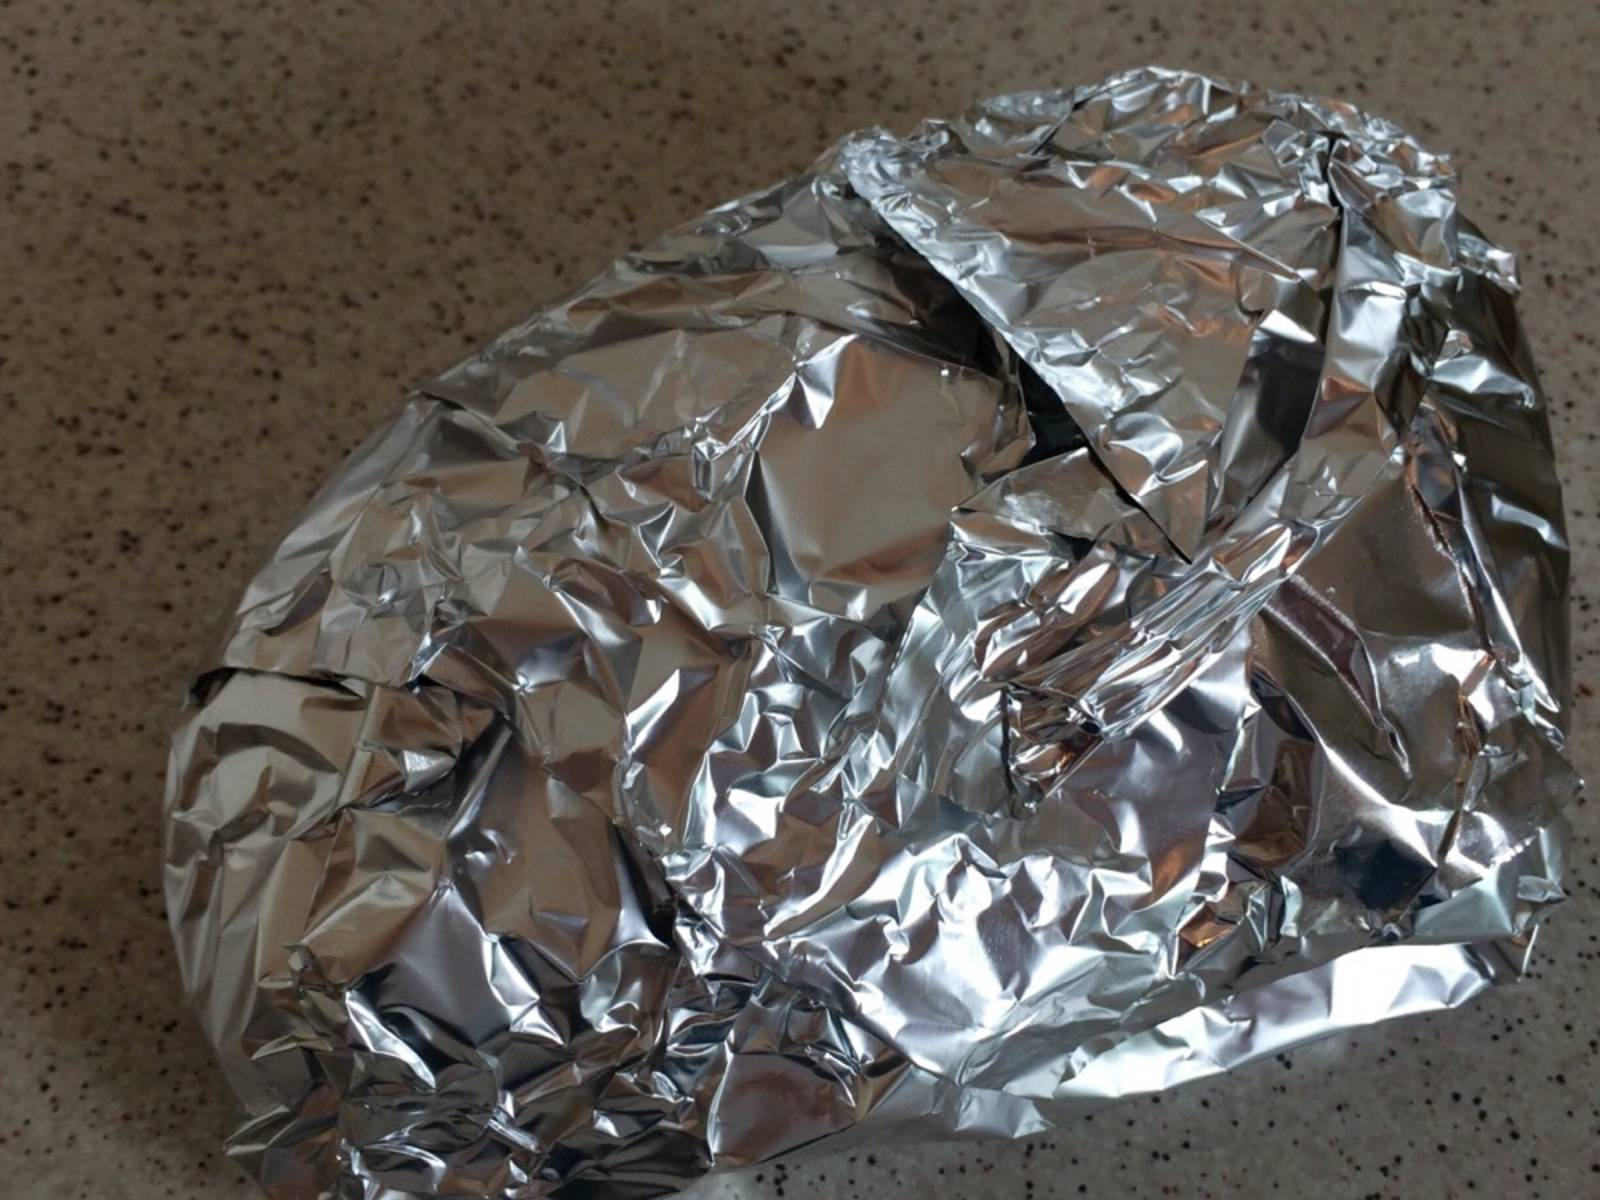 Remove duck breast from oven and rest for approx. 5 min. in aluminum foil. Slice and serve on top of the salad.